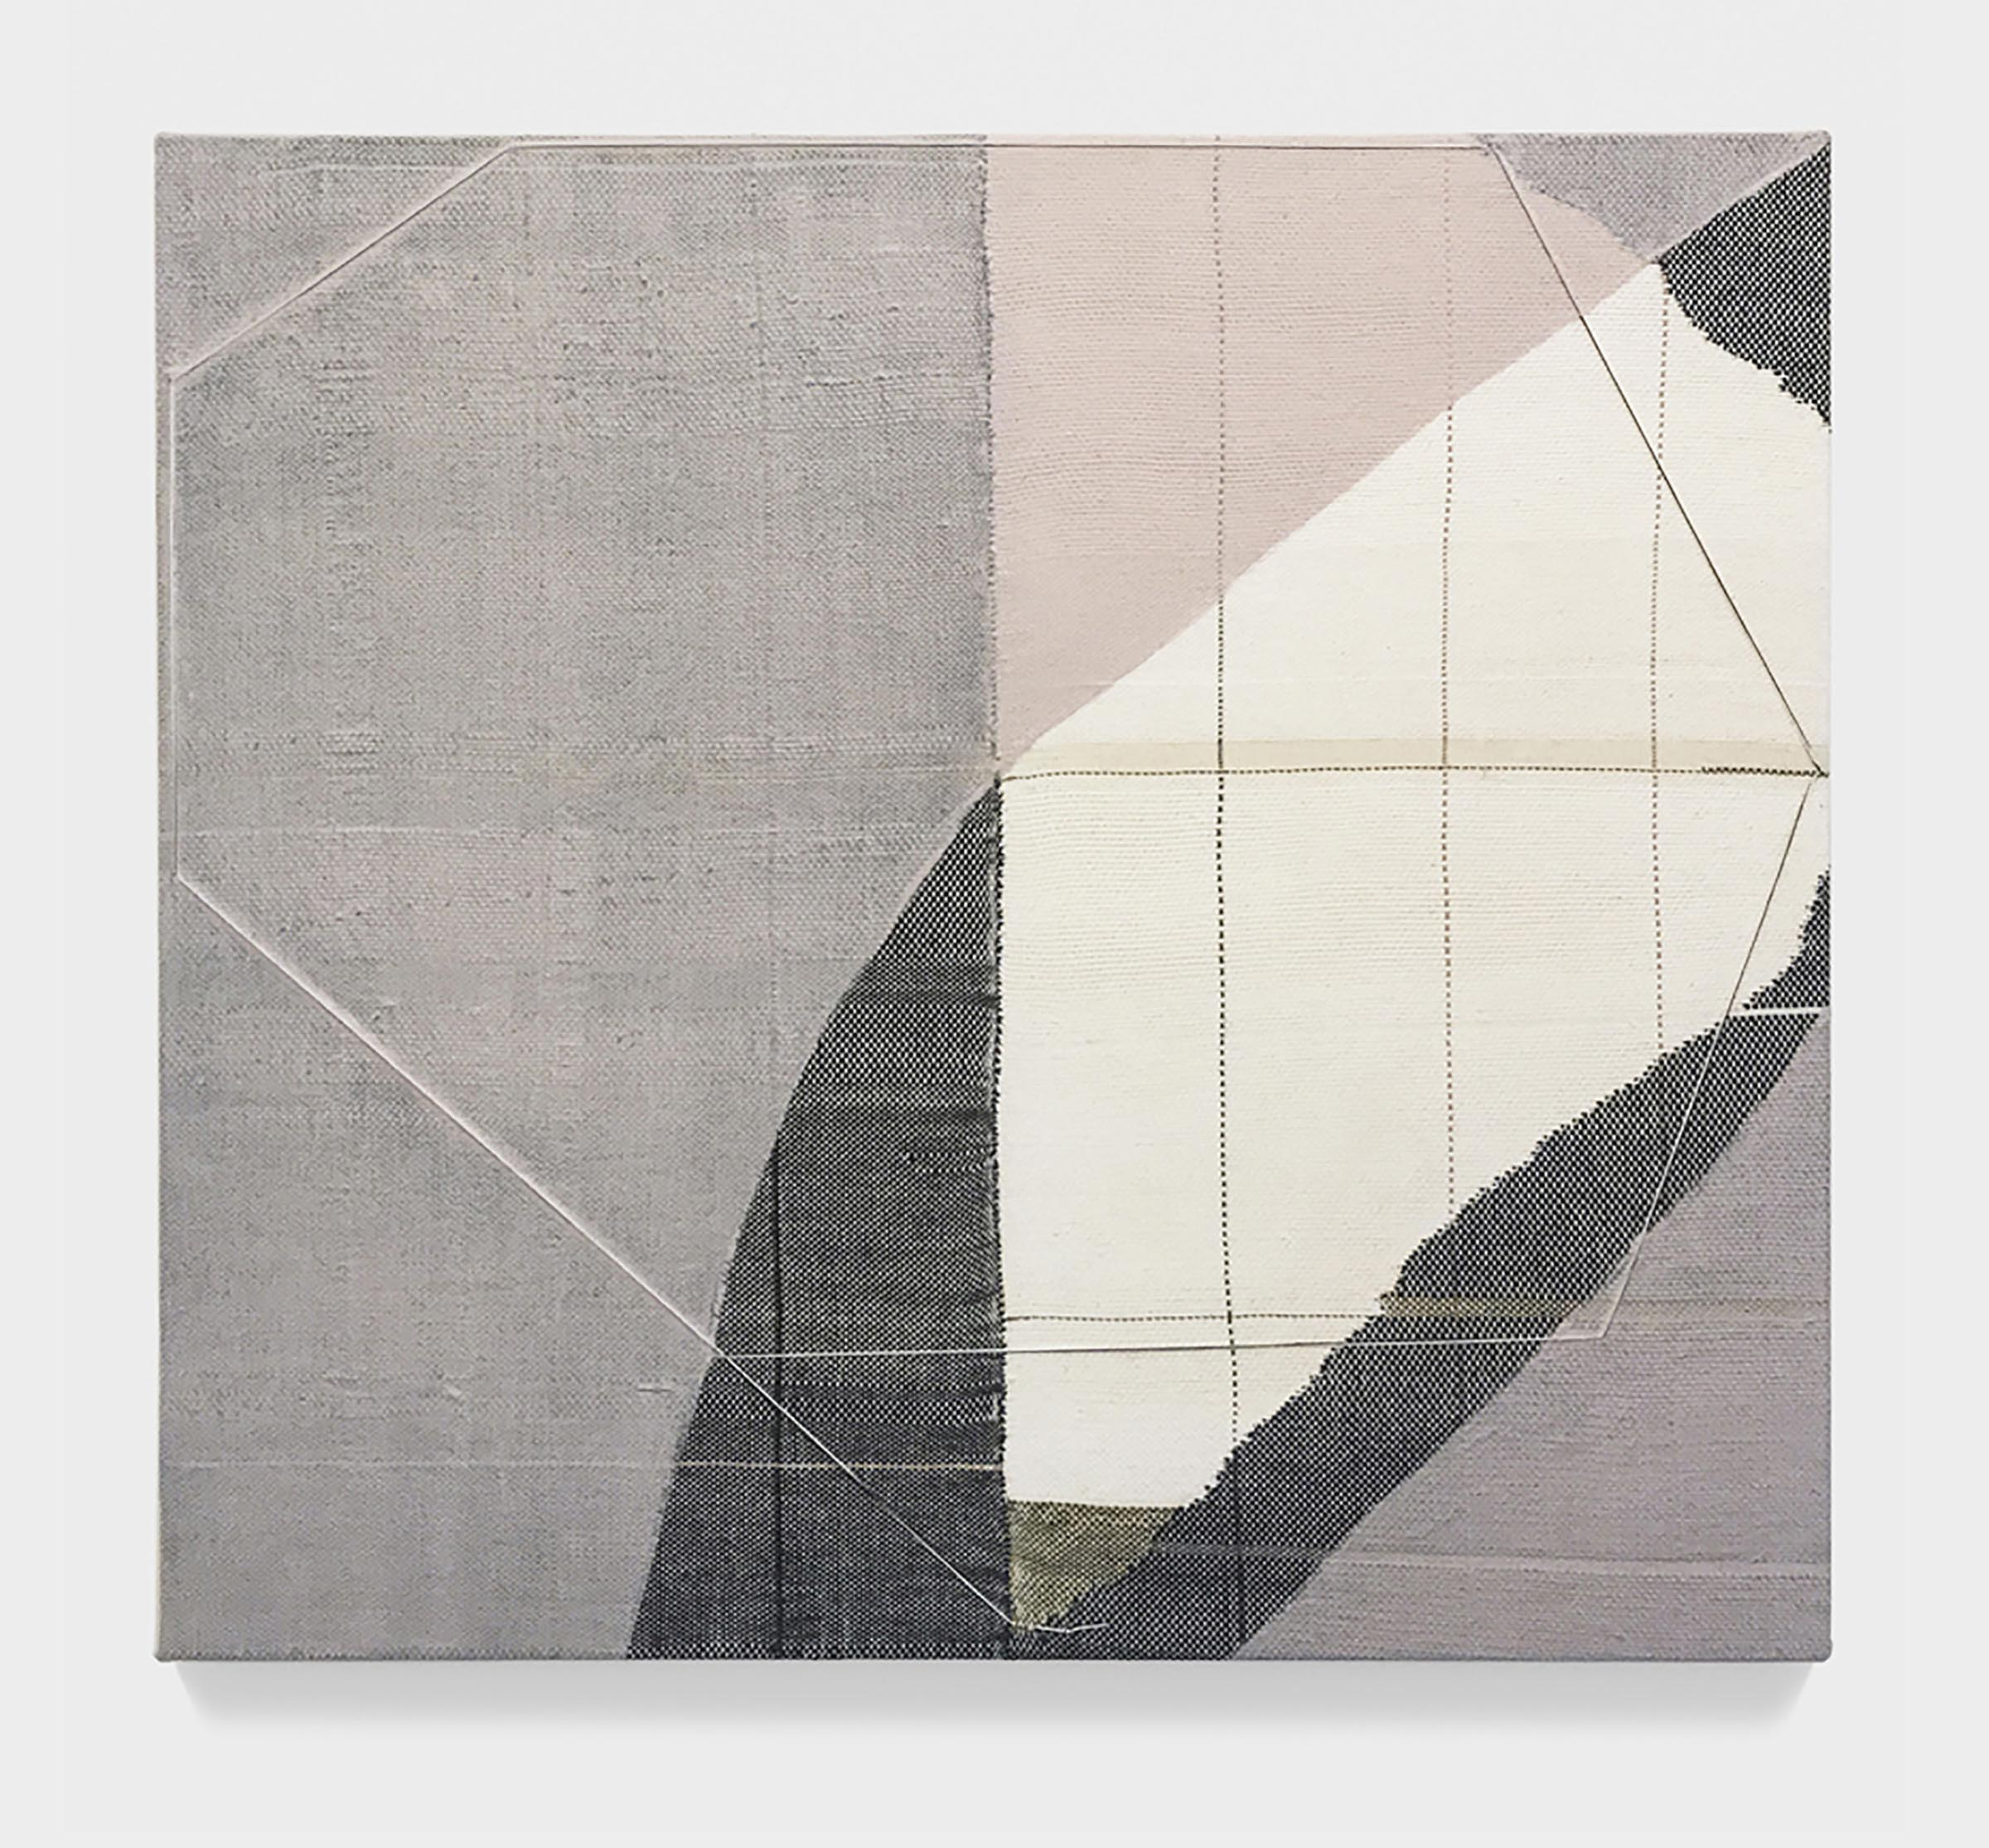 Mary Raap, Fog Veil, Handwoven cotton, silk, and acrylic over canvas, 30 x 32 x 1.5 in, 2019